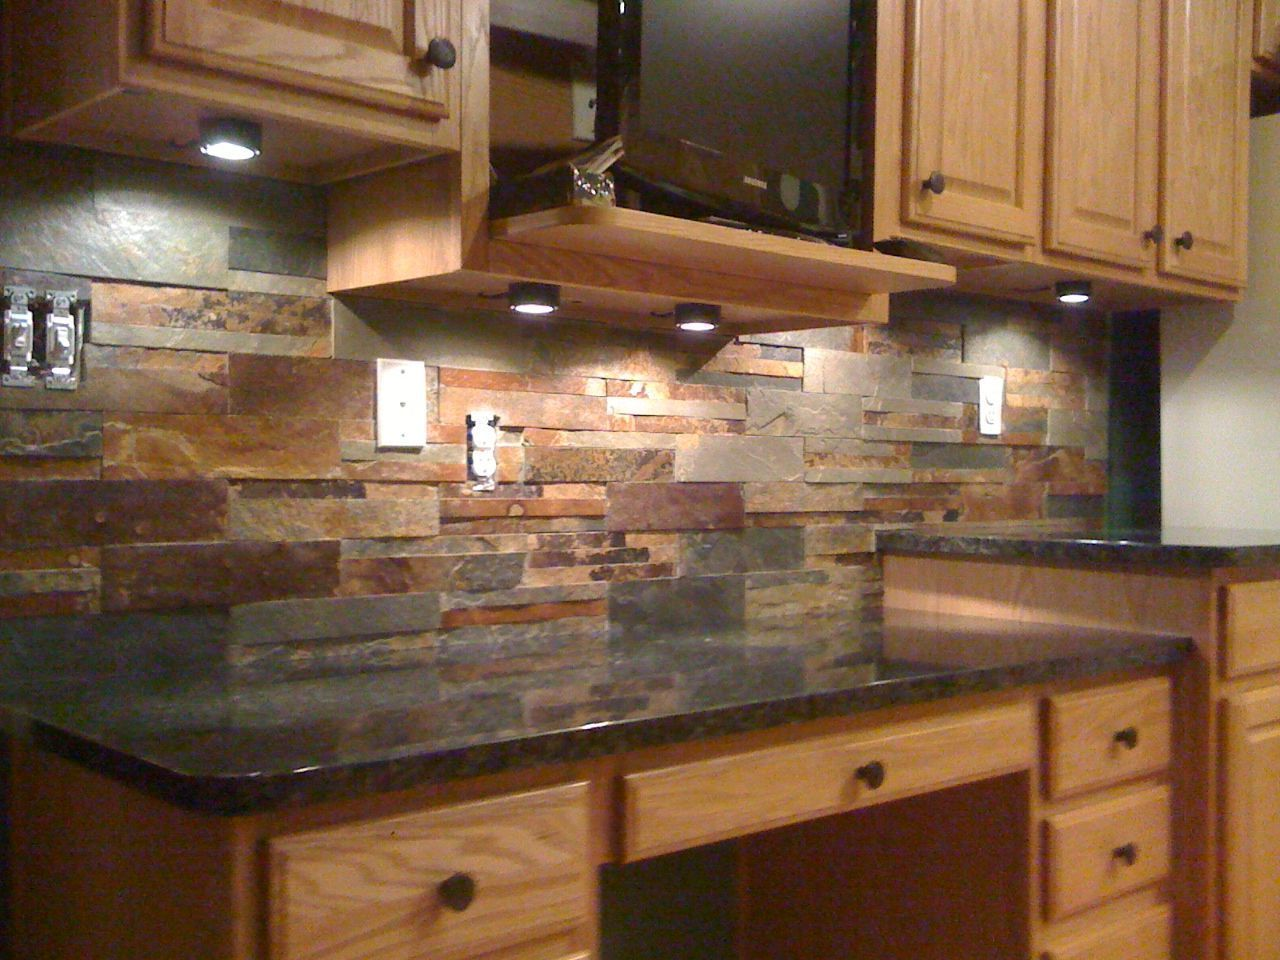 it would tie the beautiful granite countertops with the dark espresso cabinets together and brighten up